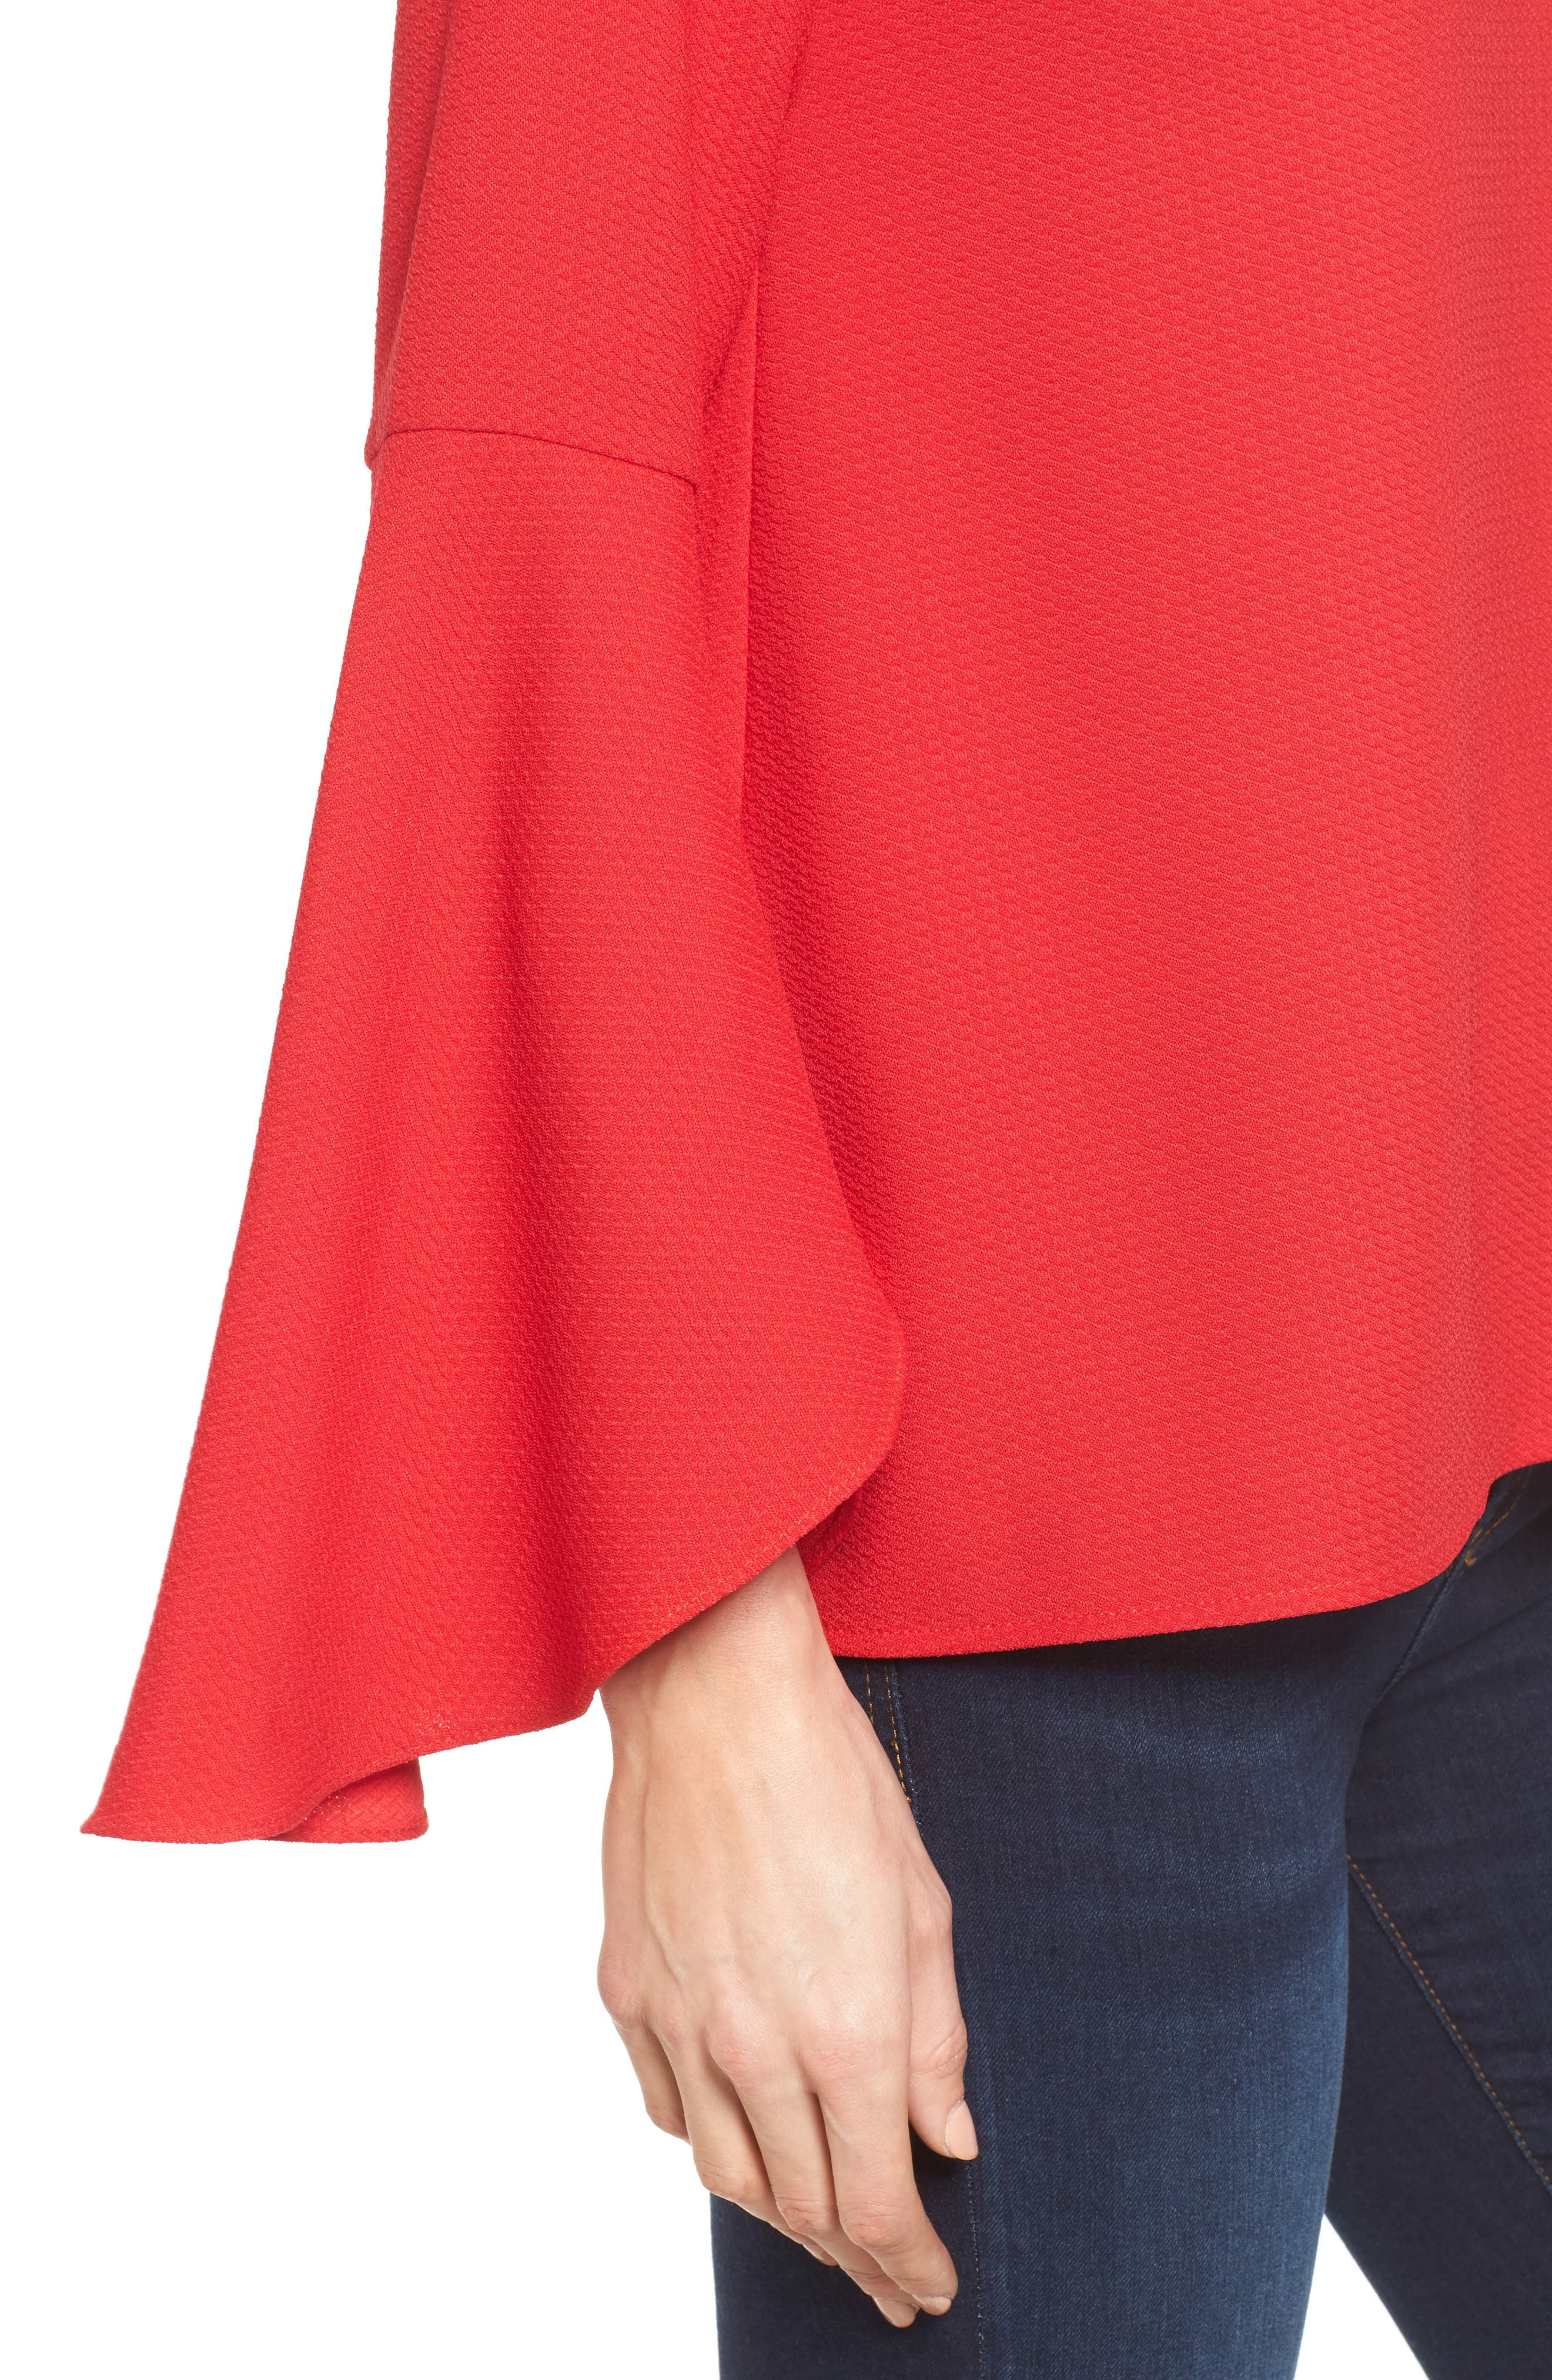 Bell Sleeve Top,                             Alternate thumbnail 4, color,                             Red Pepper